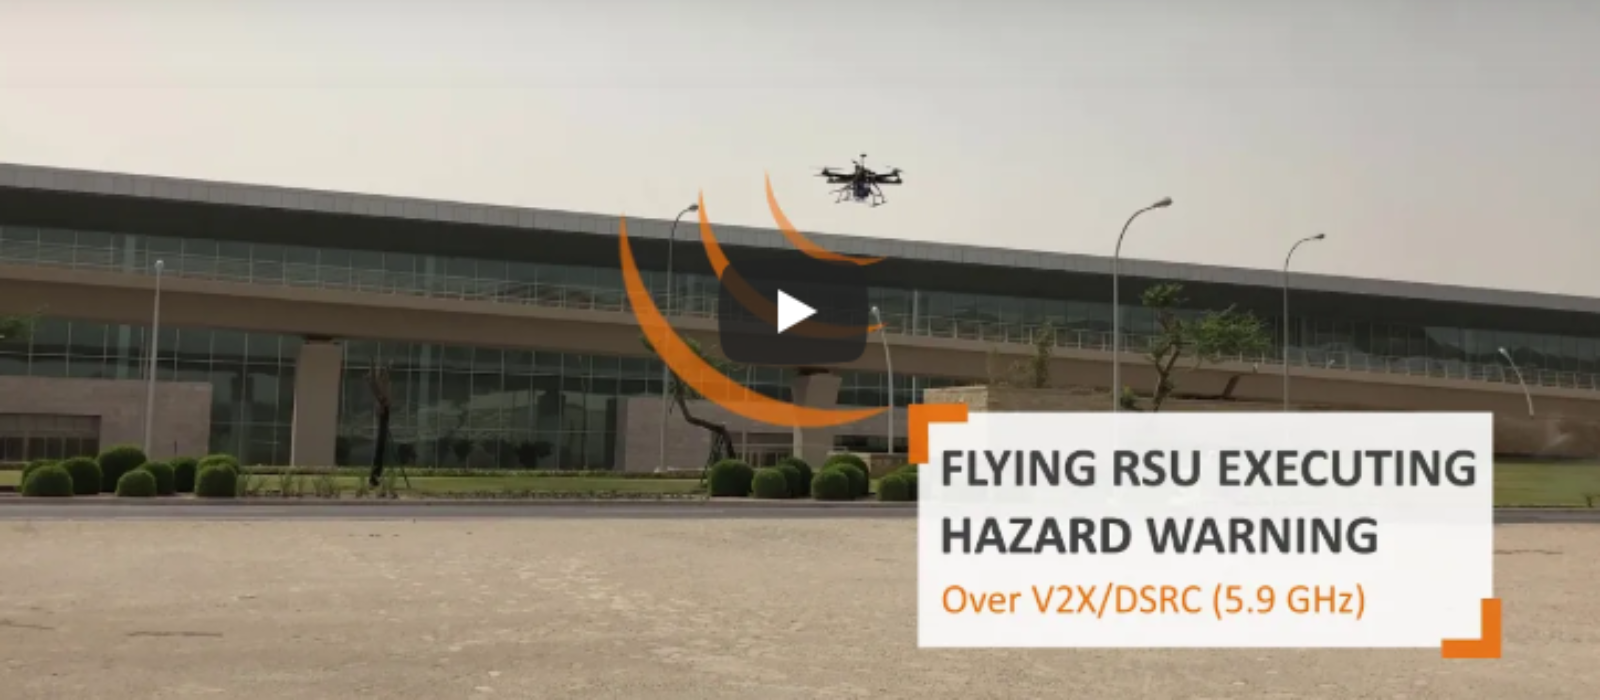 Check out this video about our Flying RSU